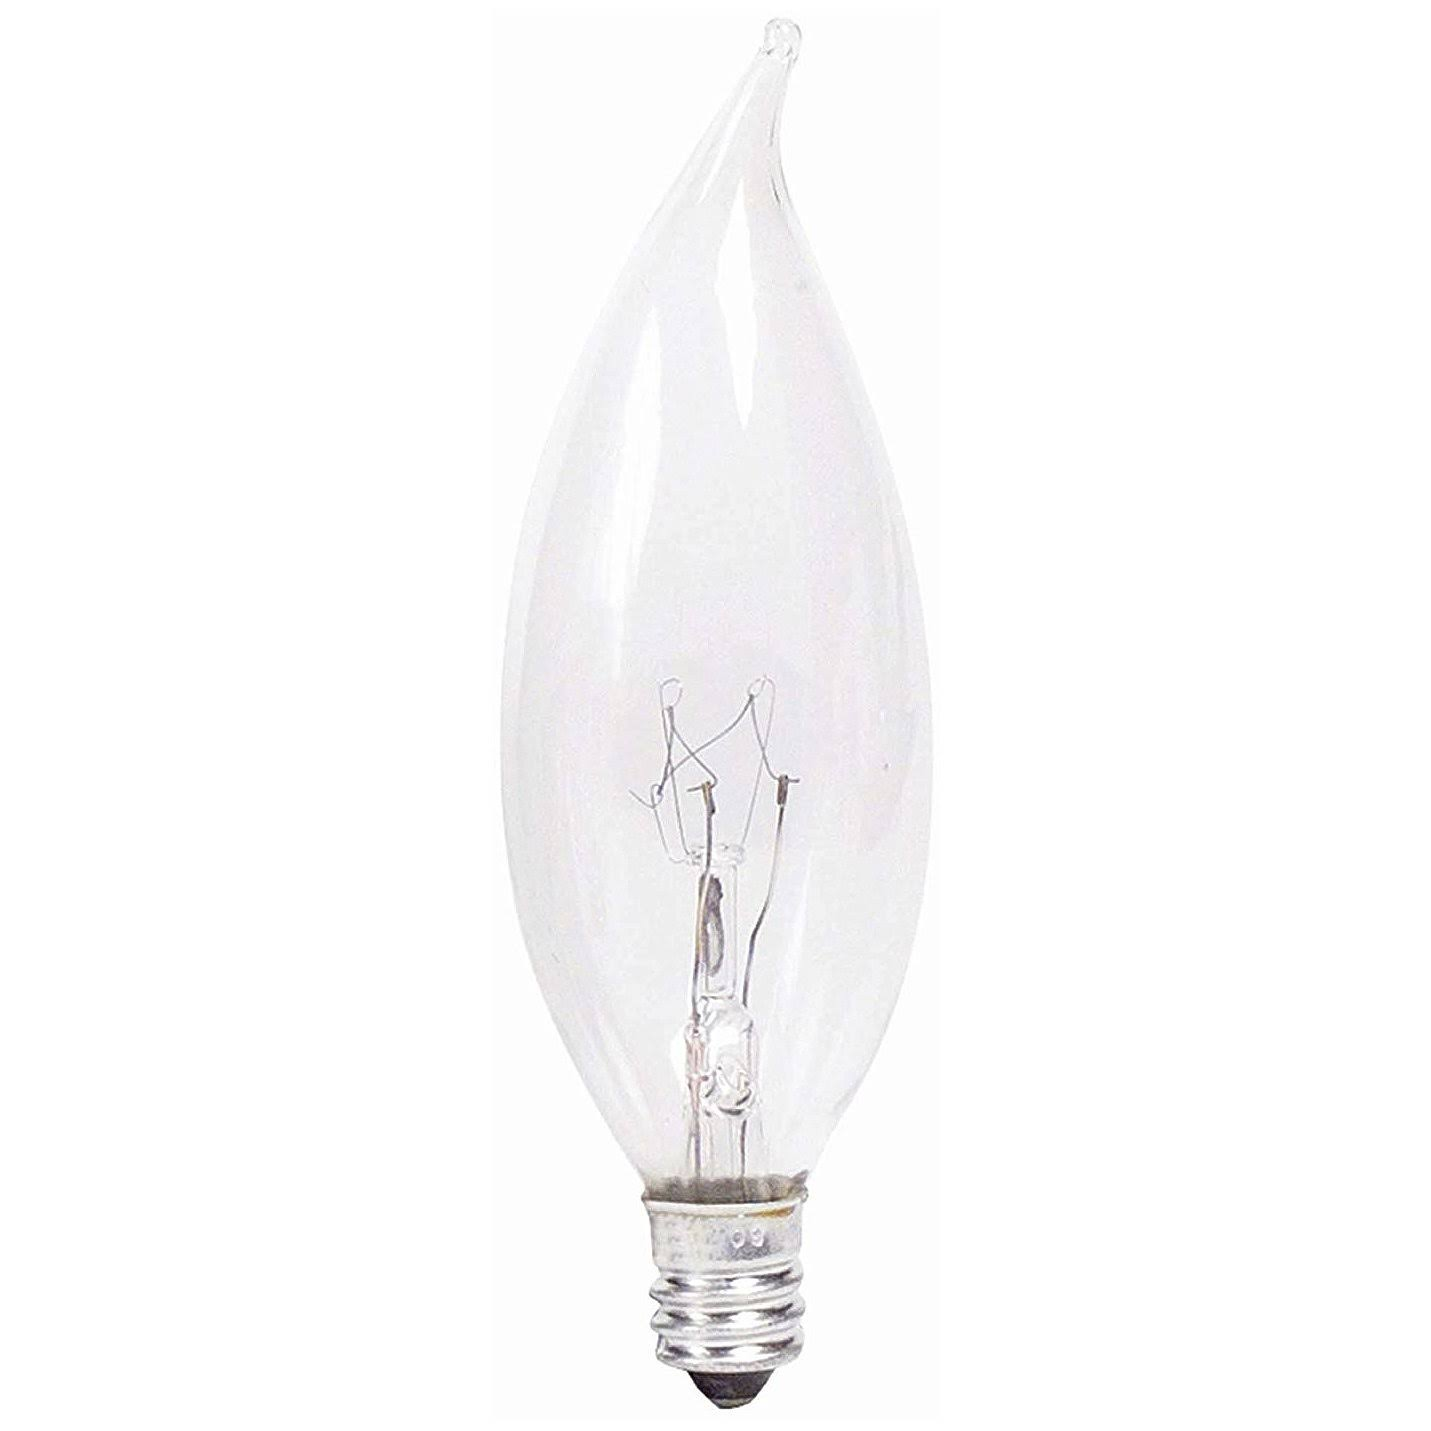 Philips Decorative Candelabra Base Candle Light Bulb - Clear, BA9, 40w, x4